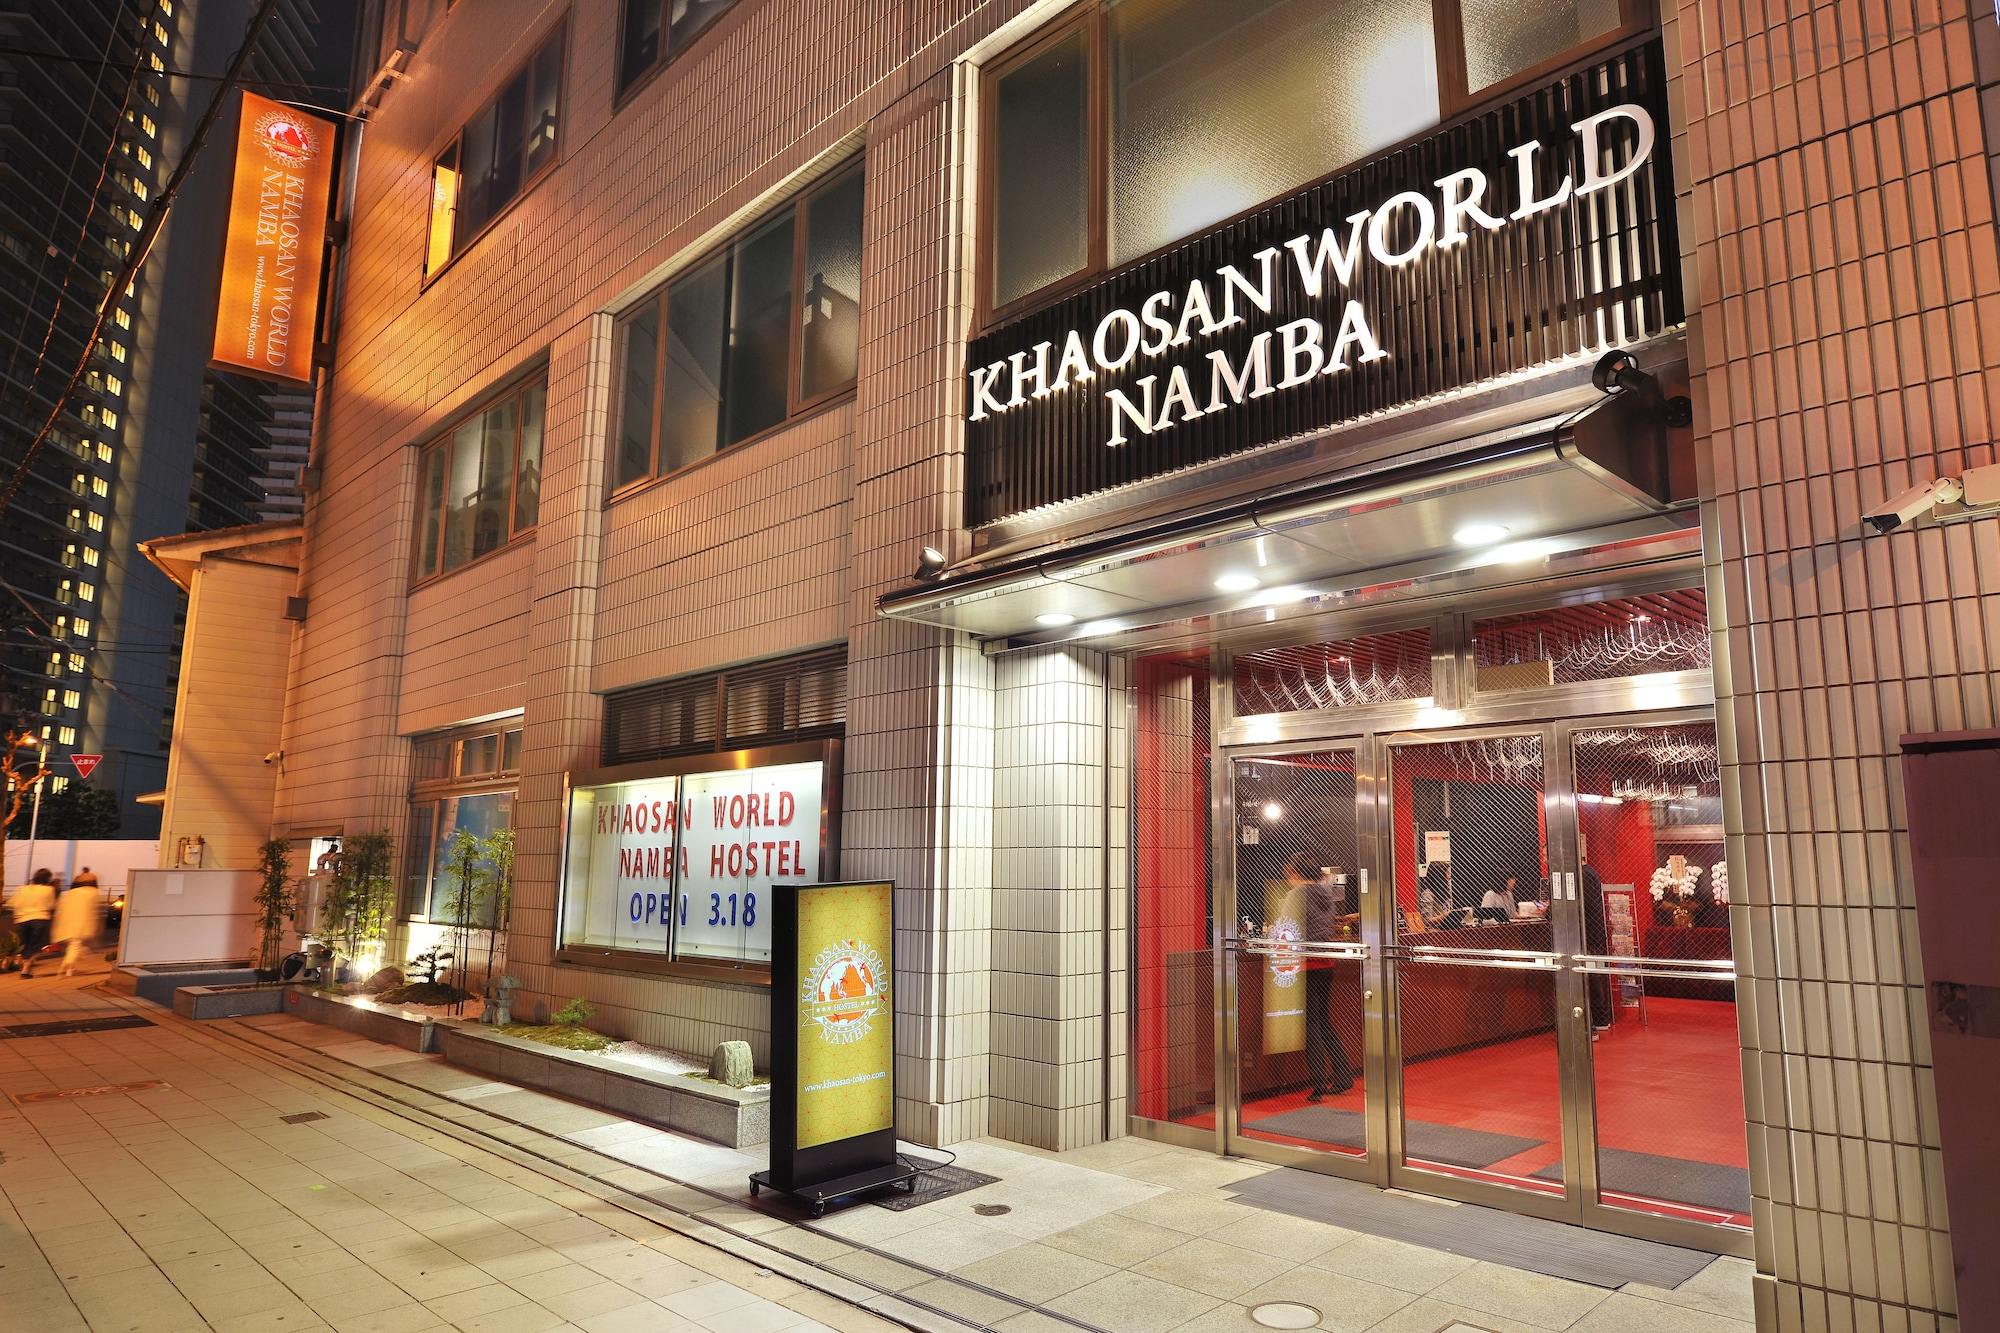 Khaosan World Namba, Osaka